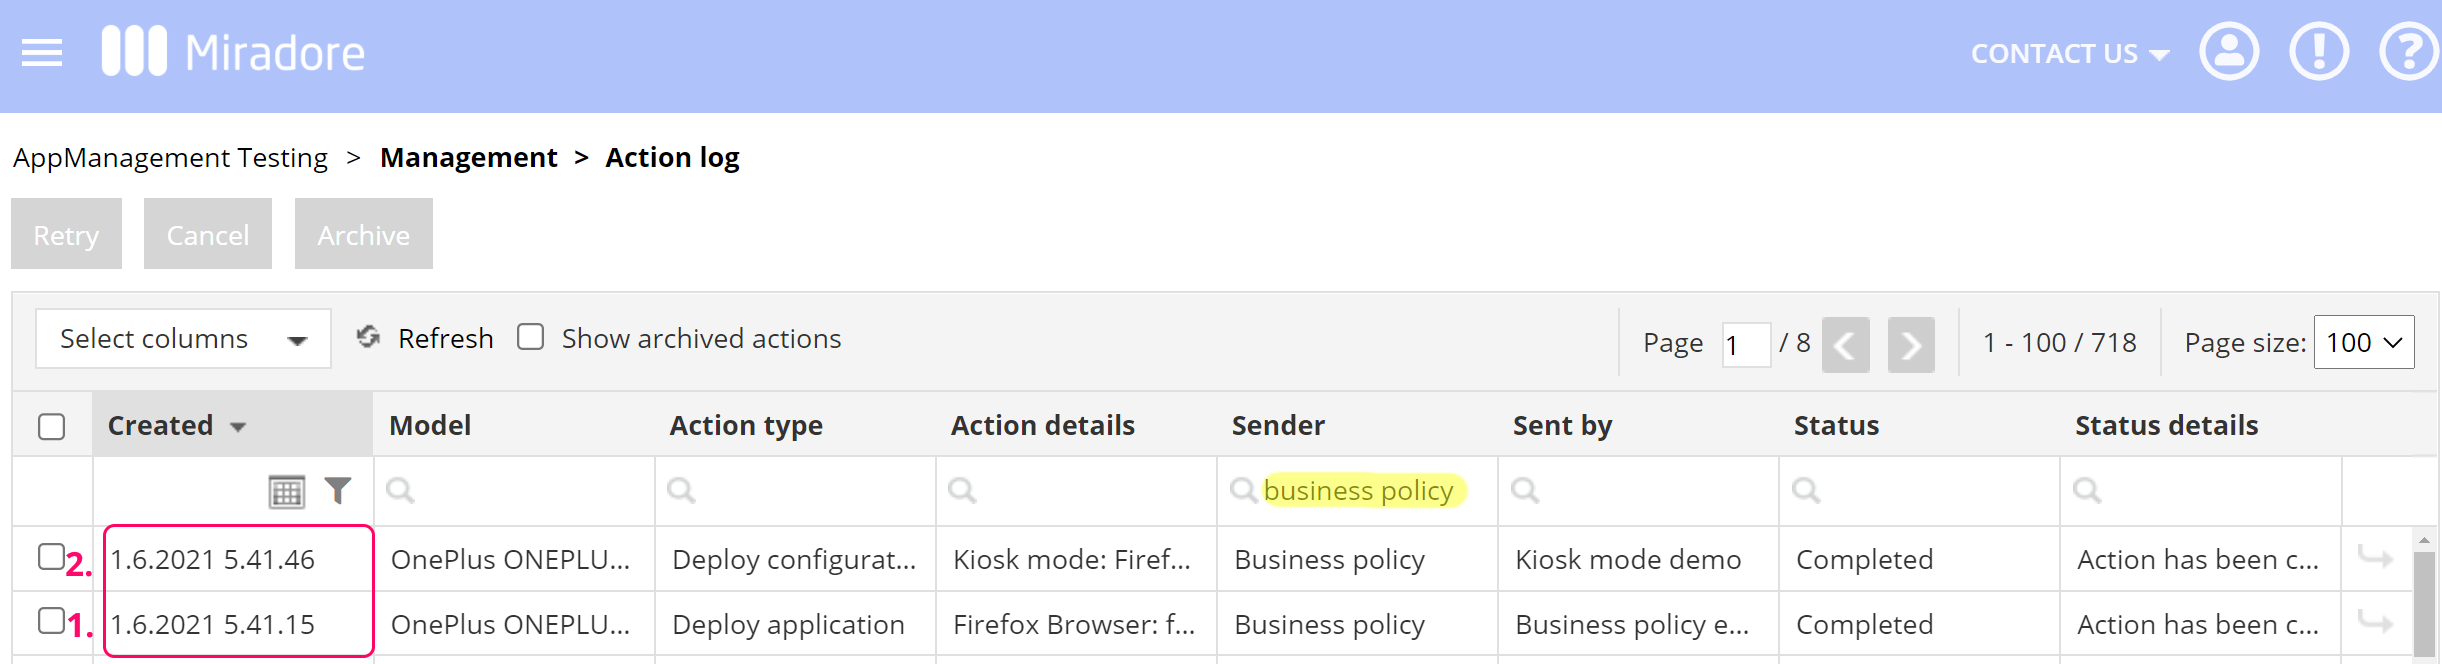 View action log for business policy dependency